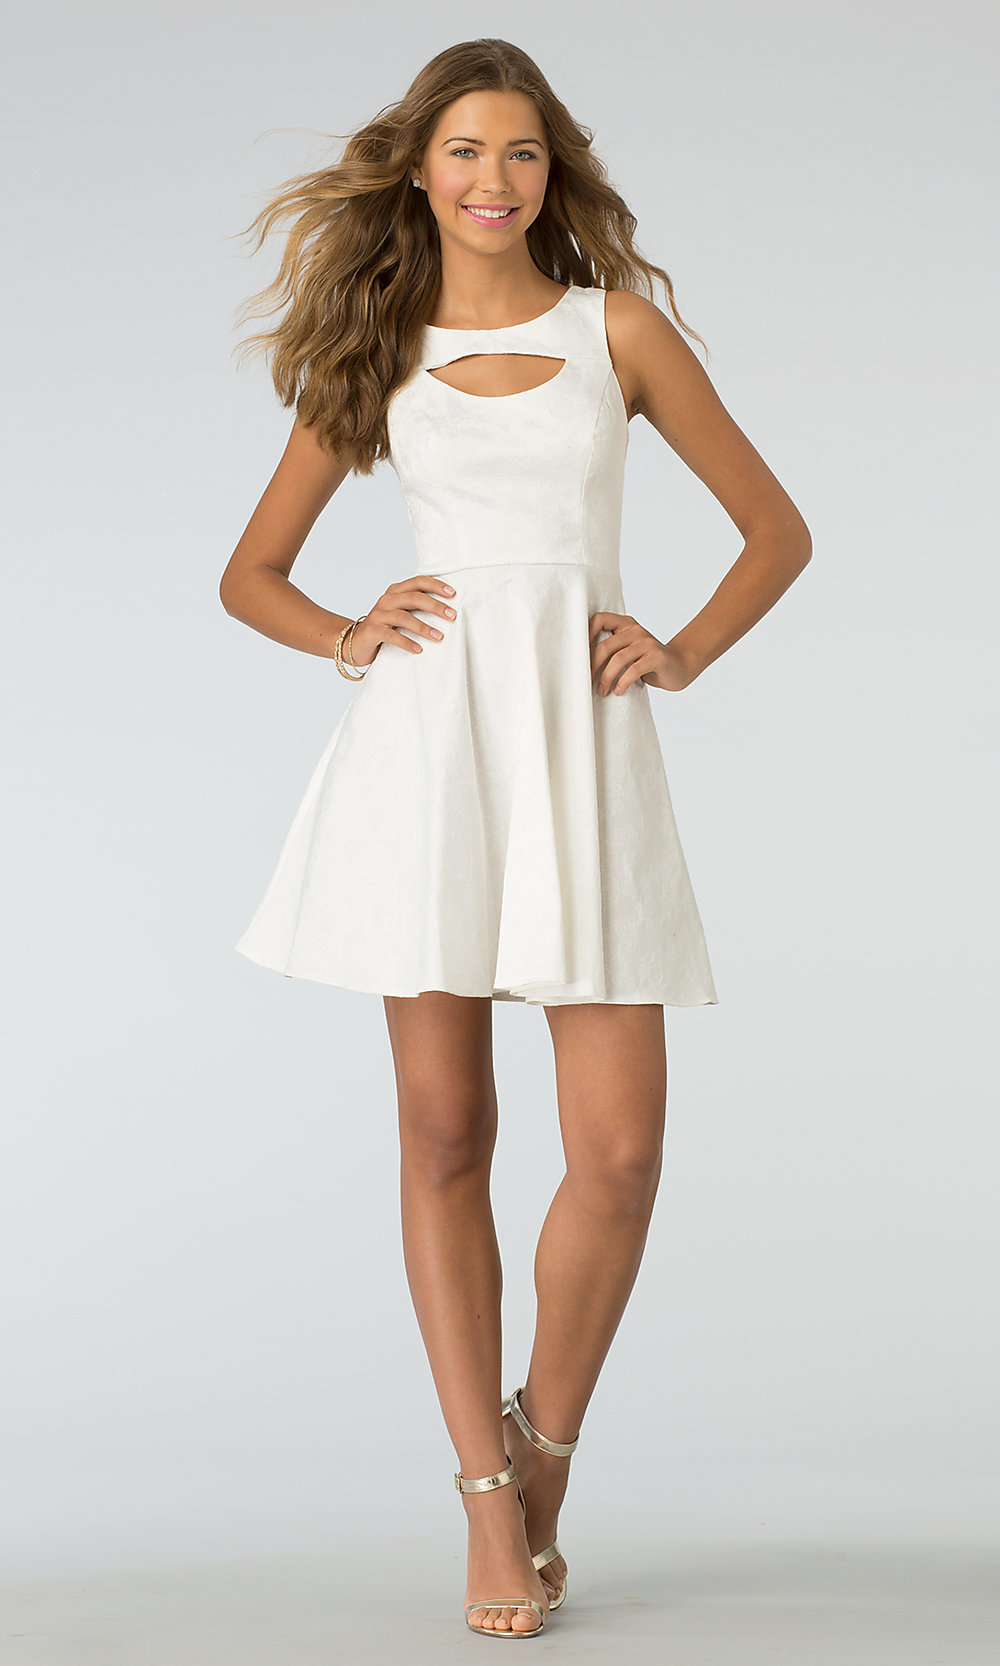 XOXO High Neck, Short Graduation Party Dress - PromGirl